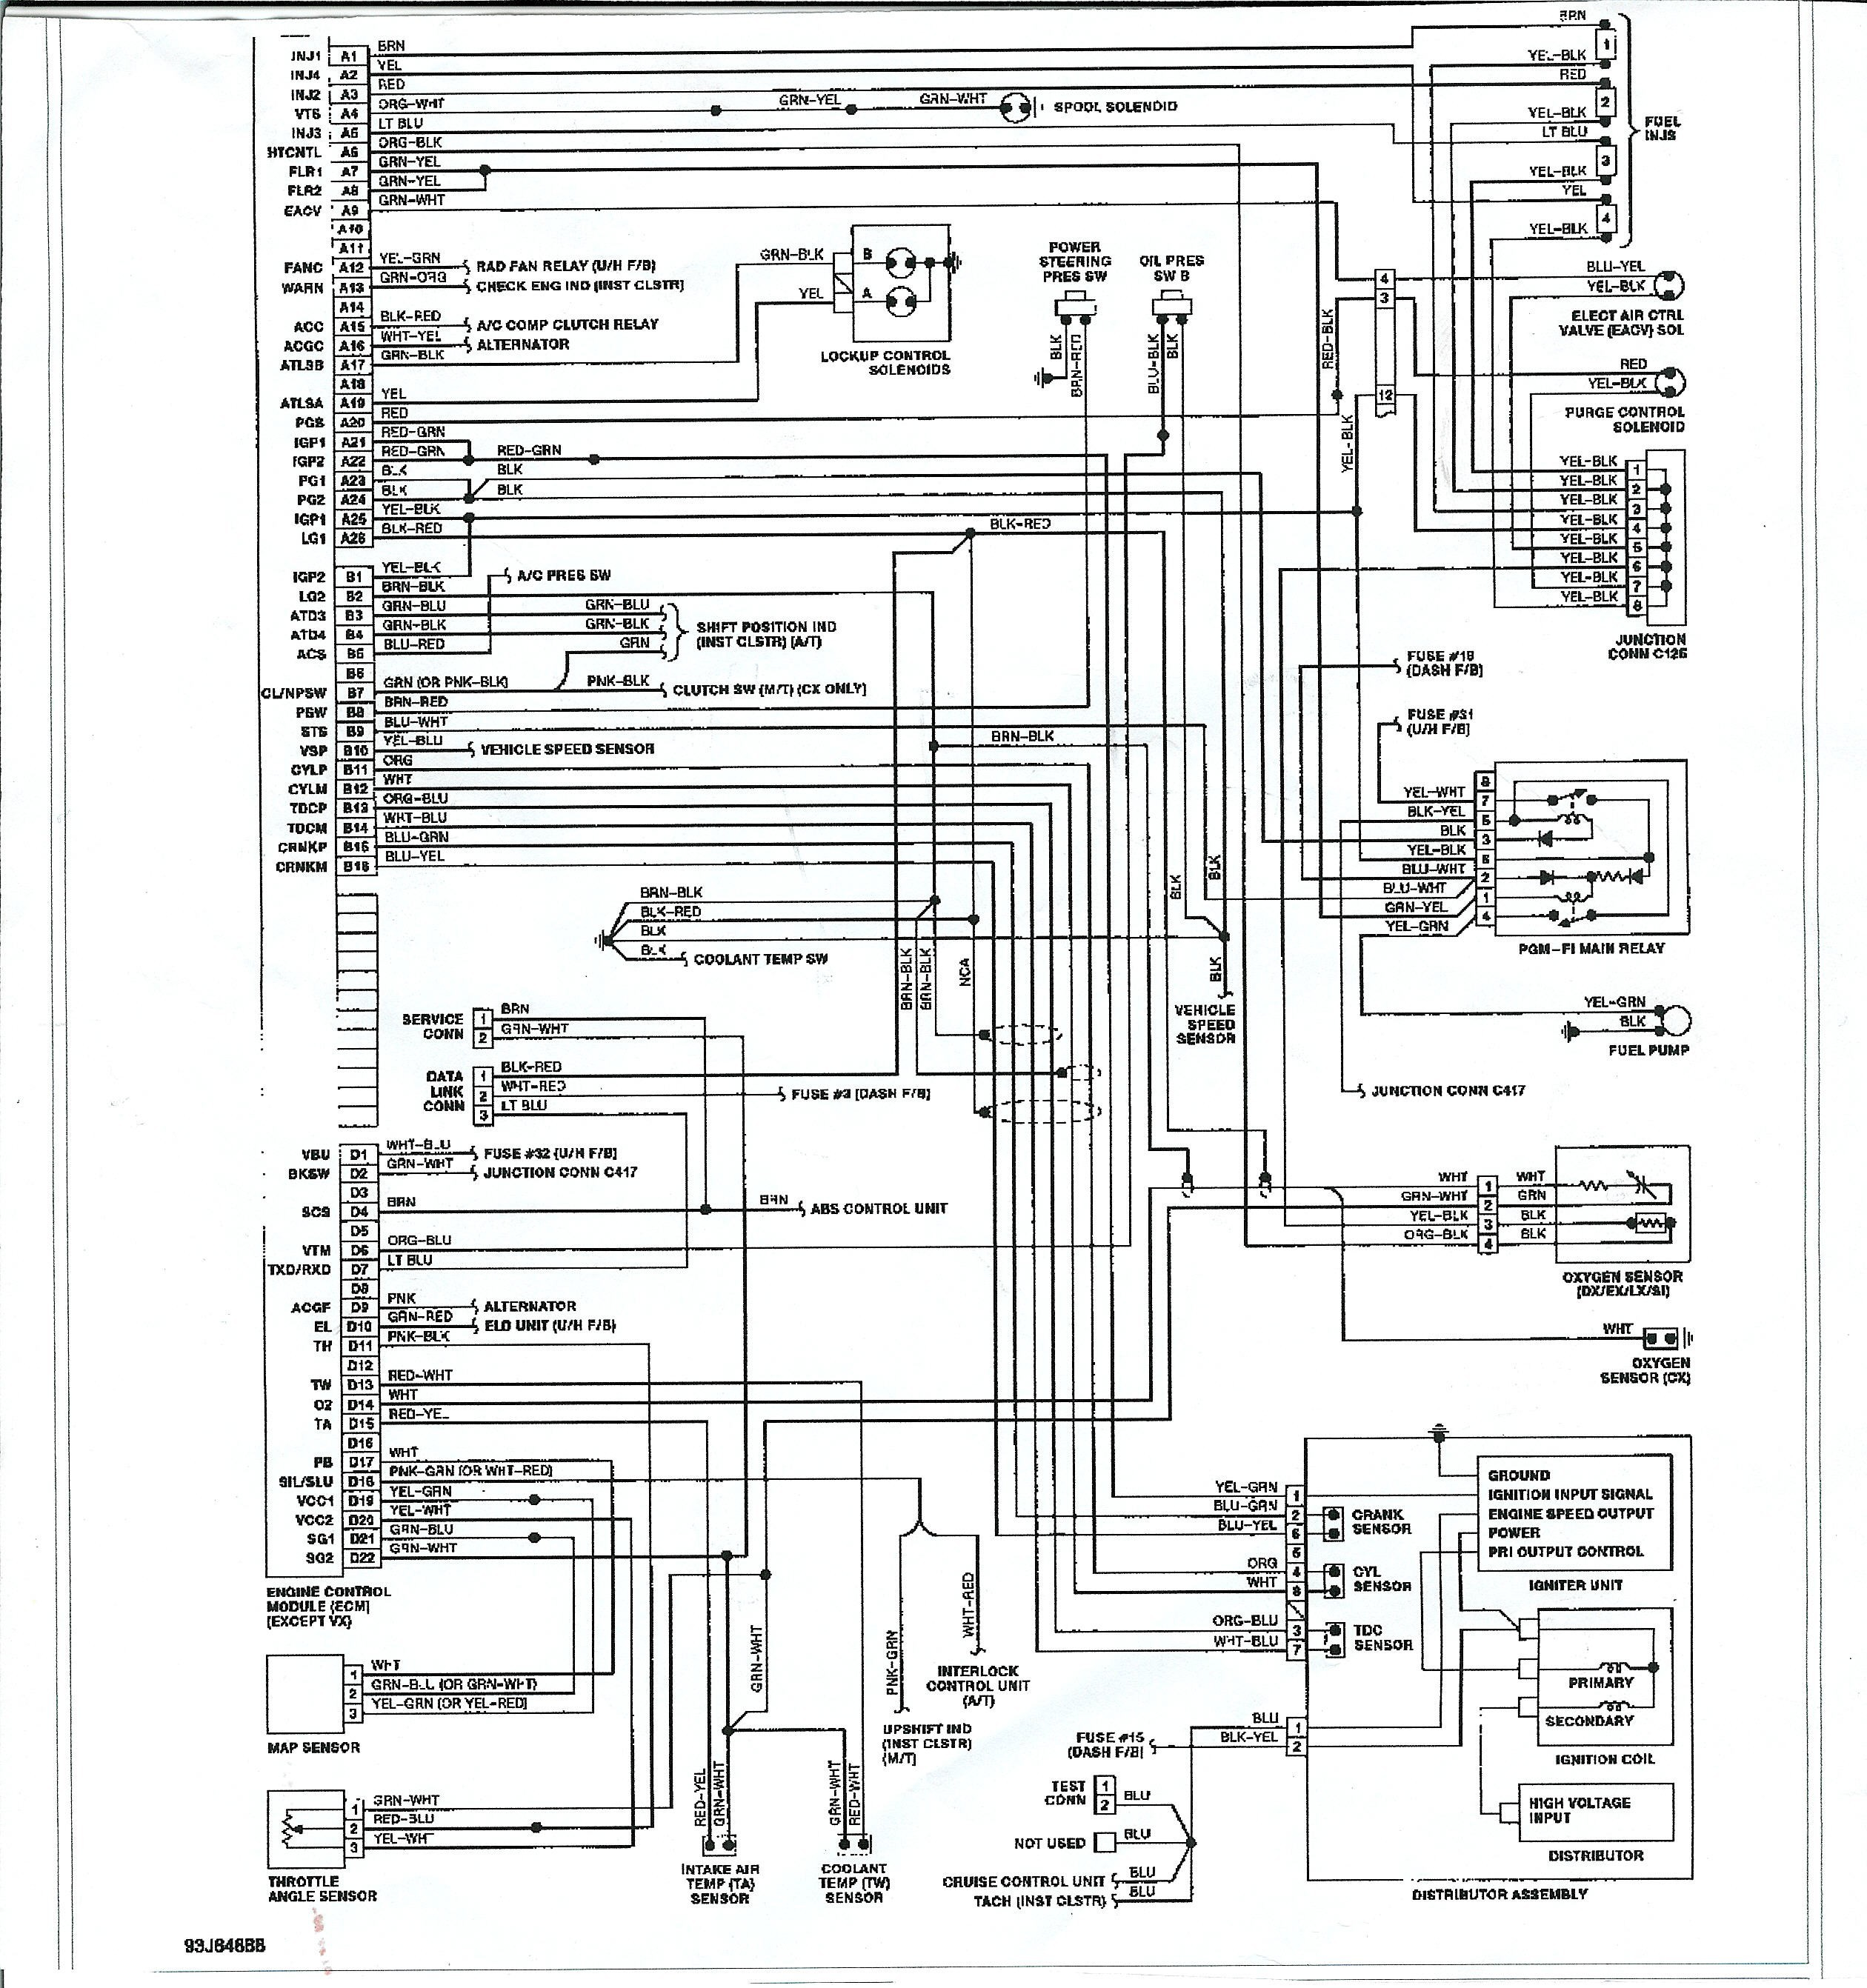 [WQZT_9871]  D421 Honda Wiring Diagram For 2003 Honda Civic Hybrid | Wiring Resources | 2004 Honda Civic Hybrid Engine Diagram |  | Wiring Resources